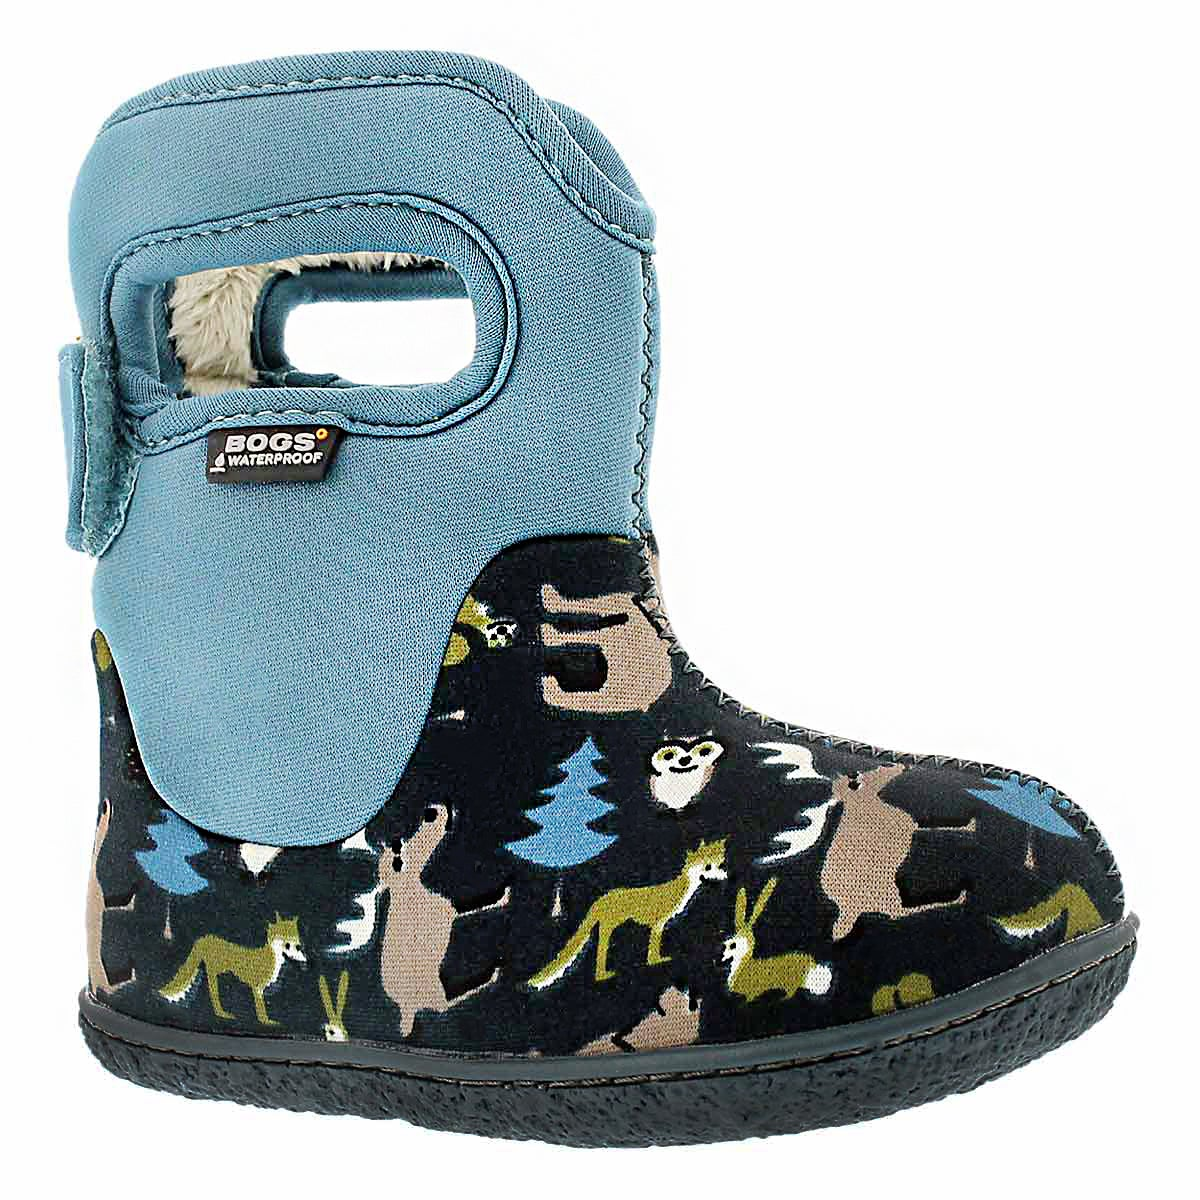 Infs Classic Woodland navy wntr boot